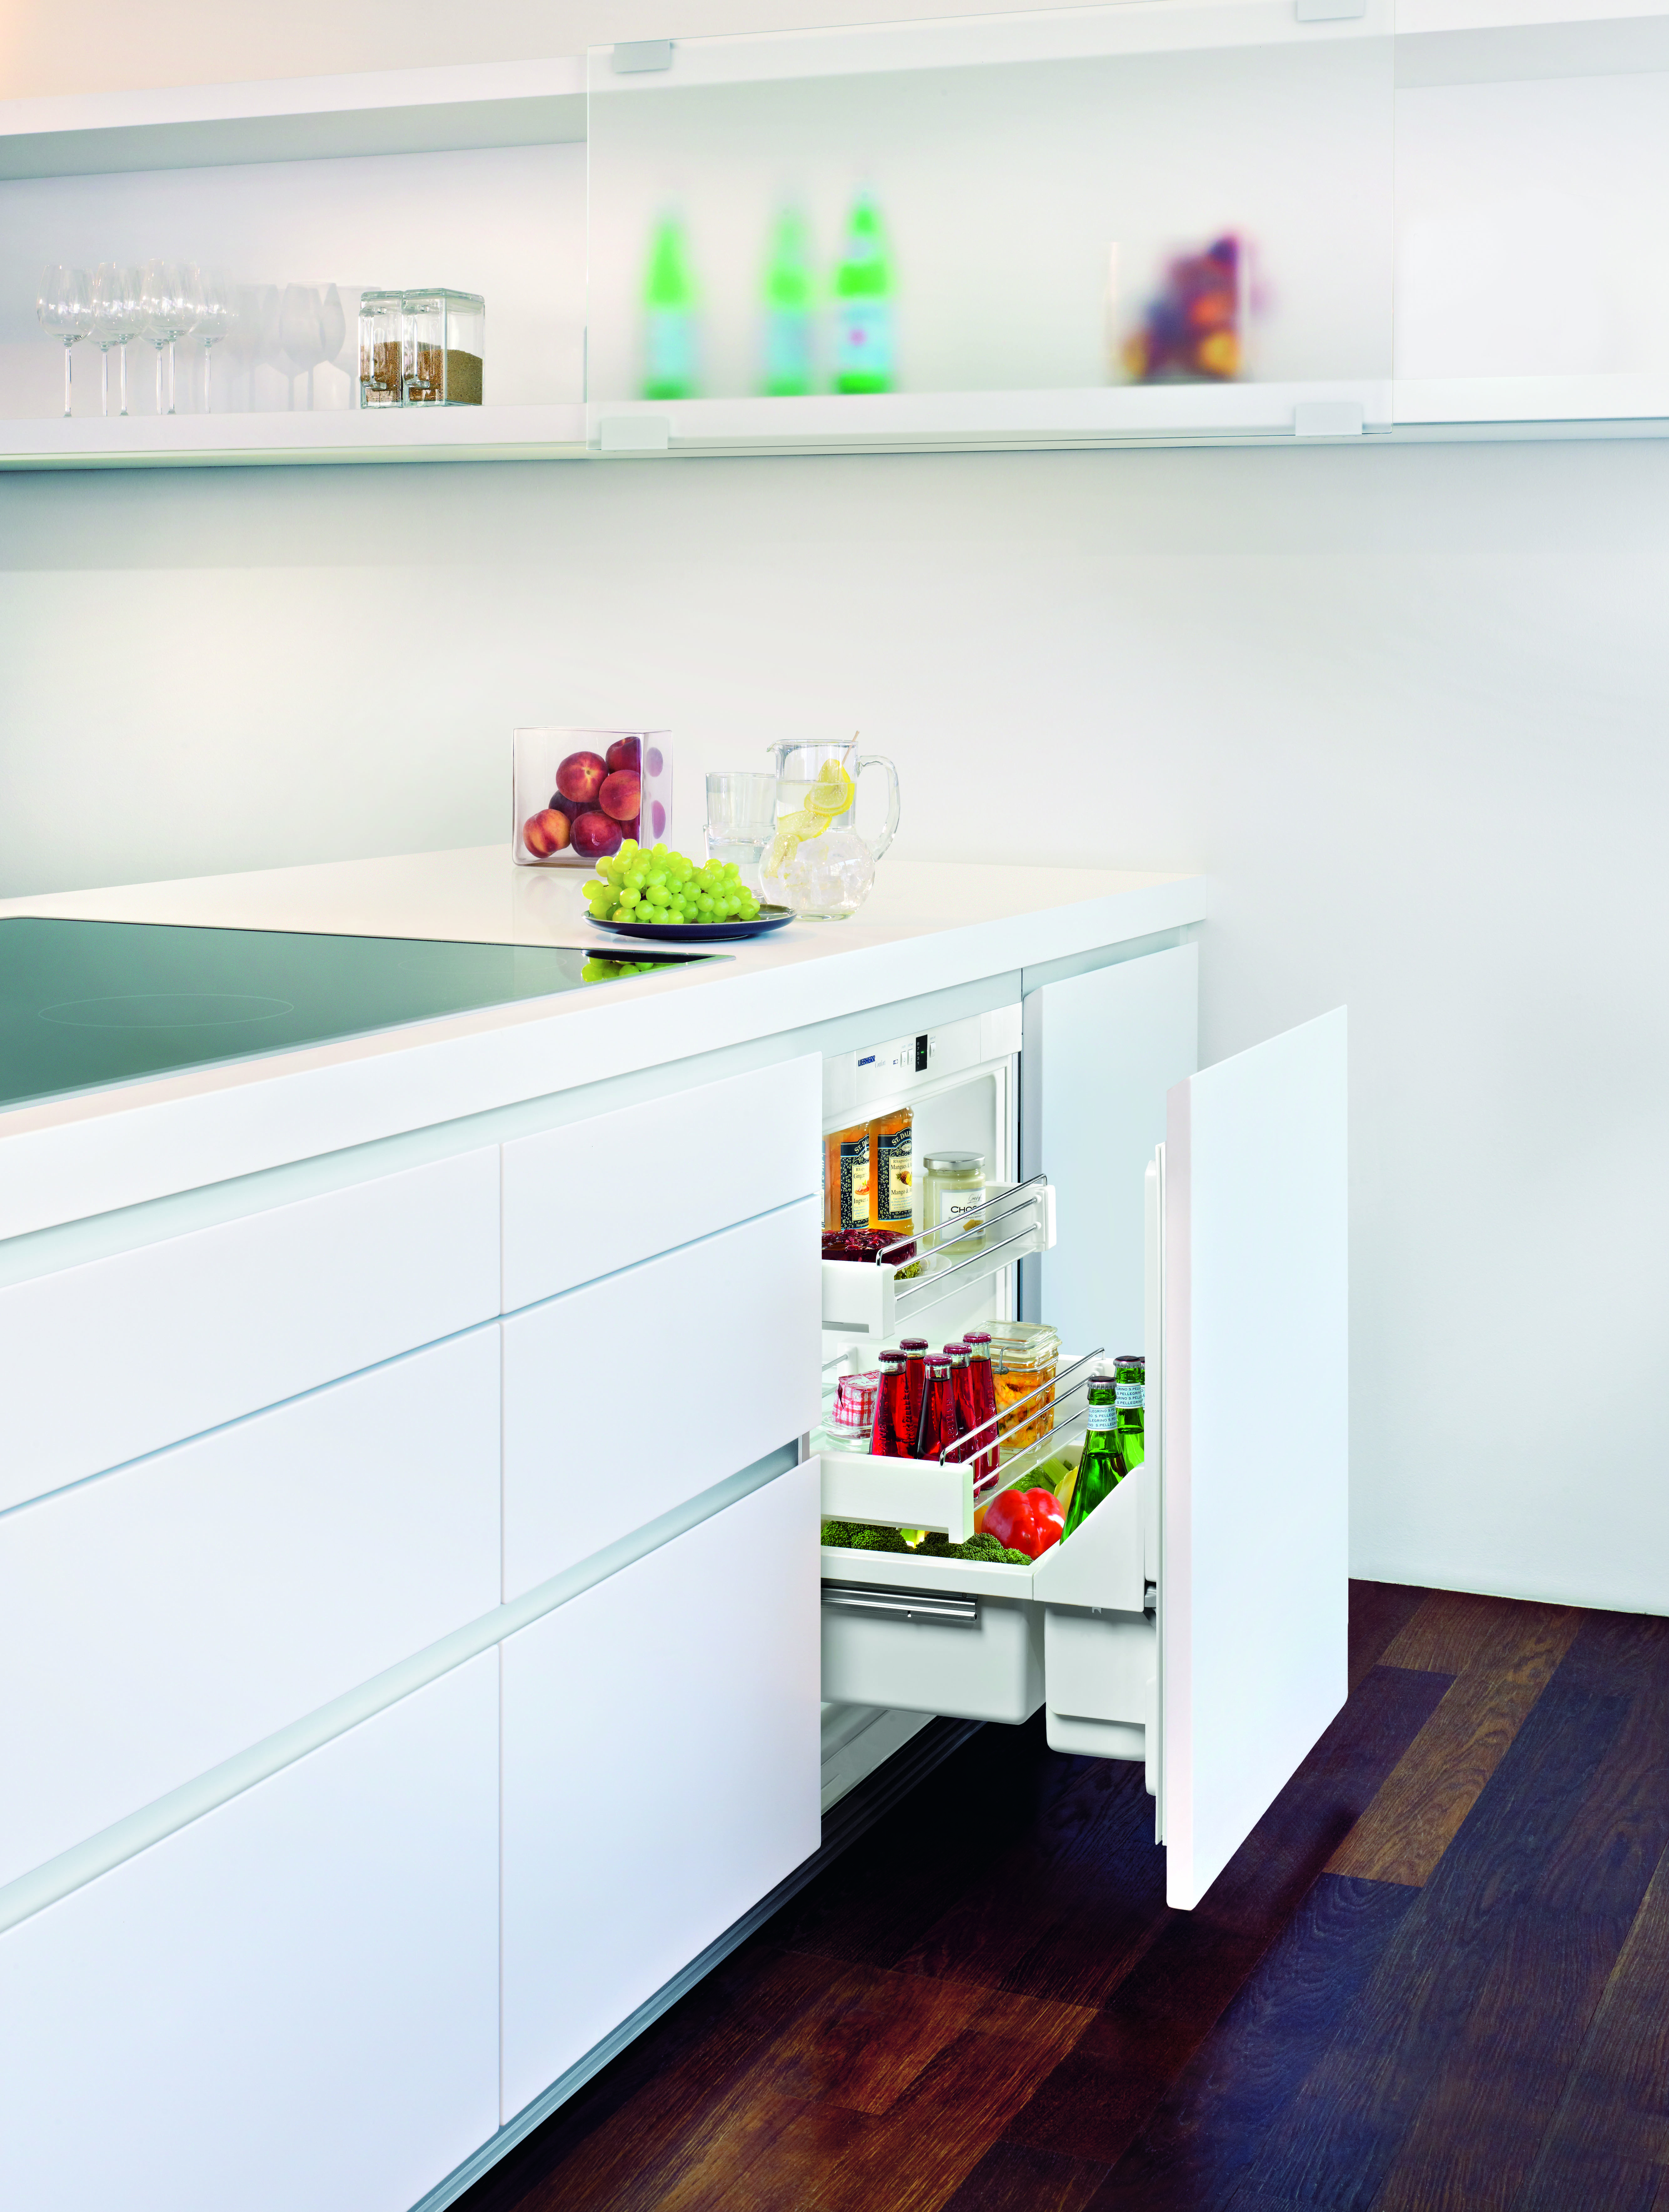 UPR 503 pull-out style undercounter refrigerator | KitchAnn Style